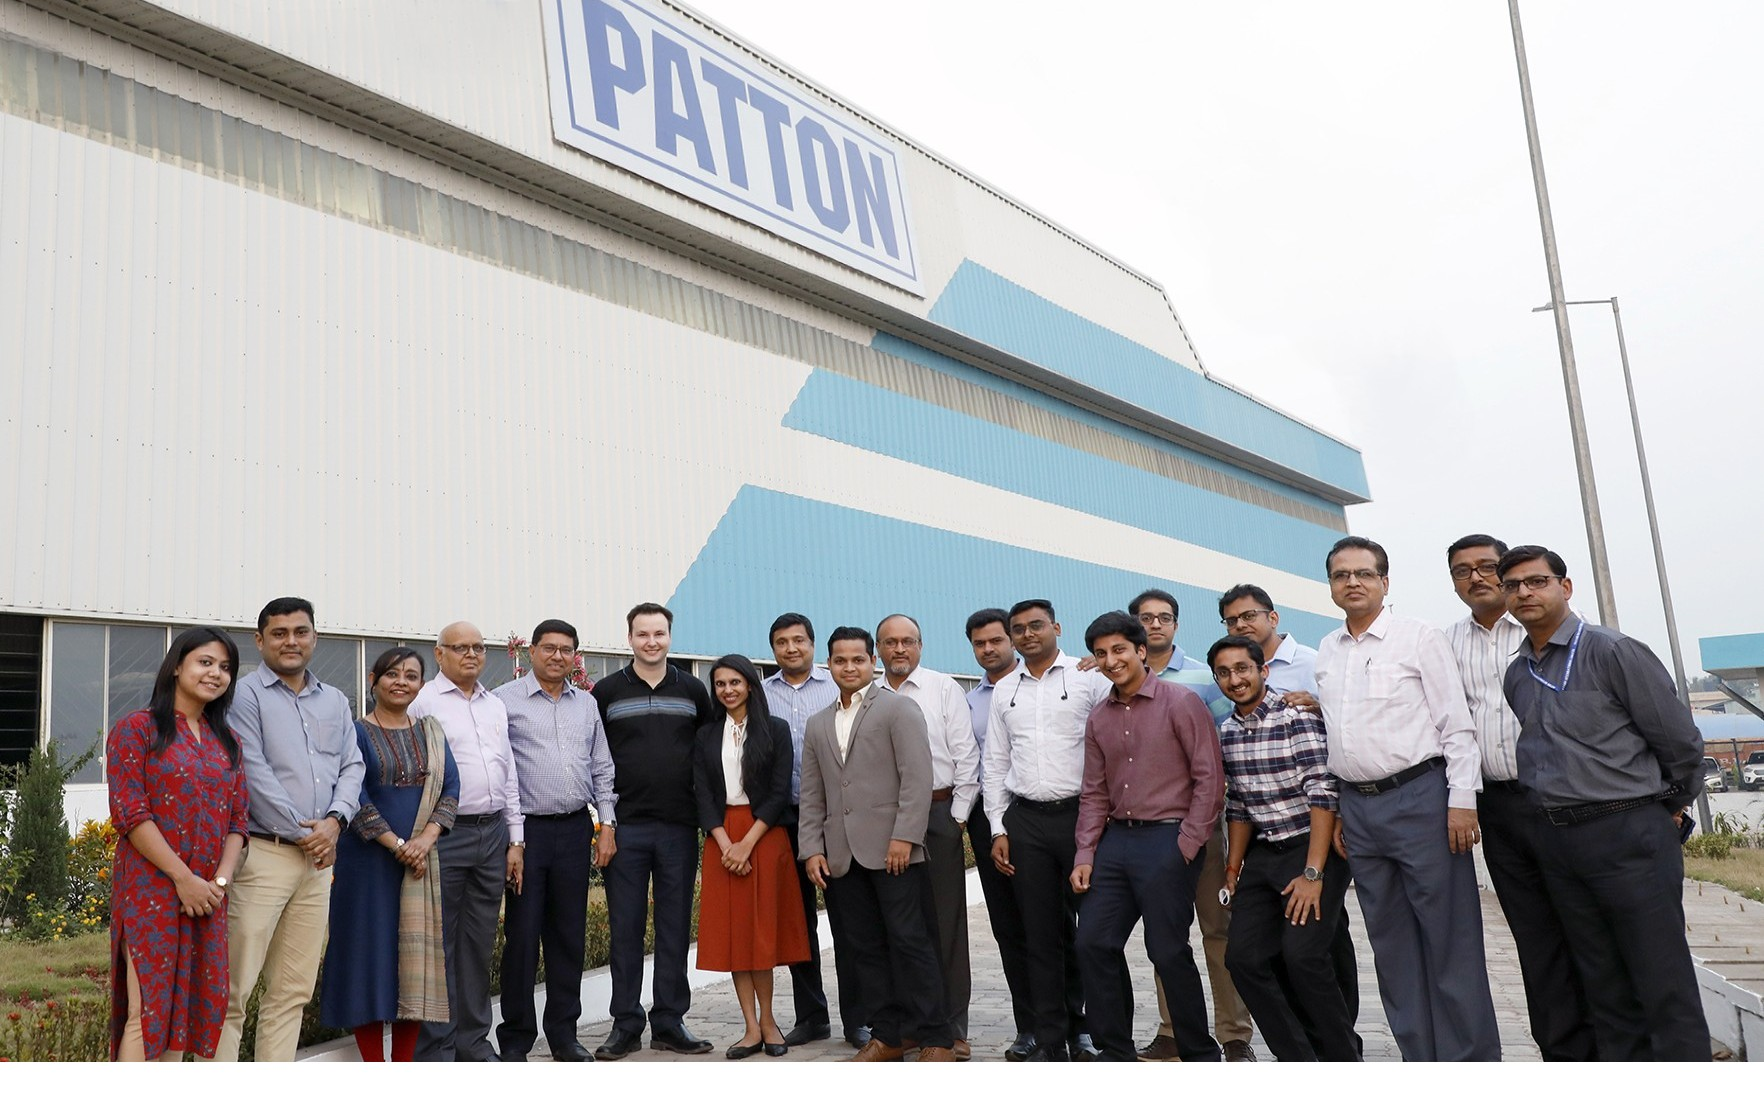 Team Patton with overseas client at our Uluberia Patton Plant